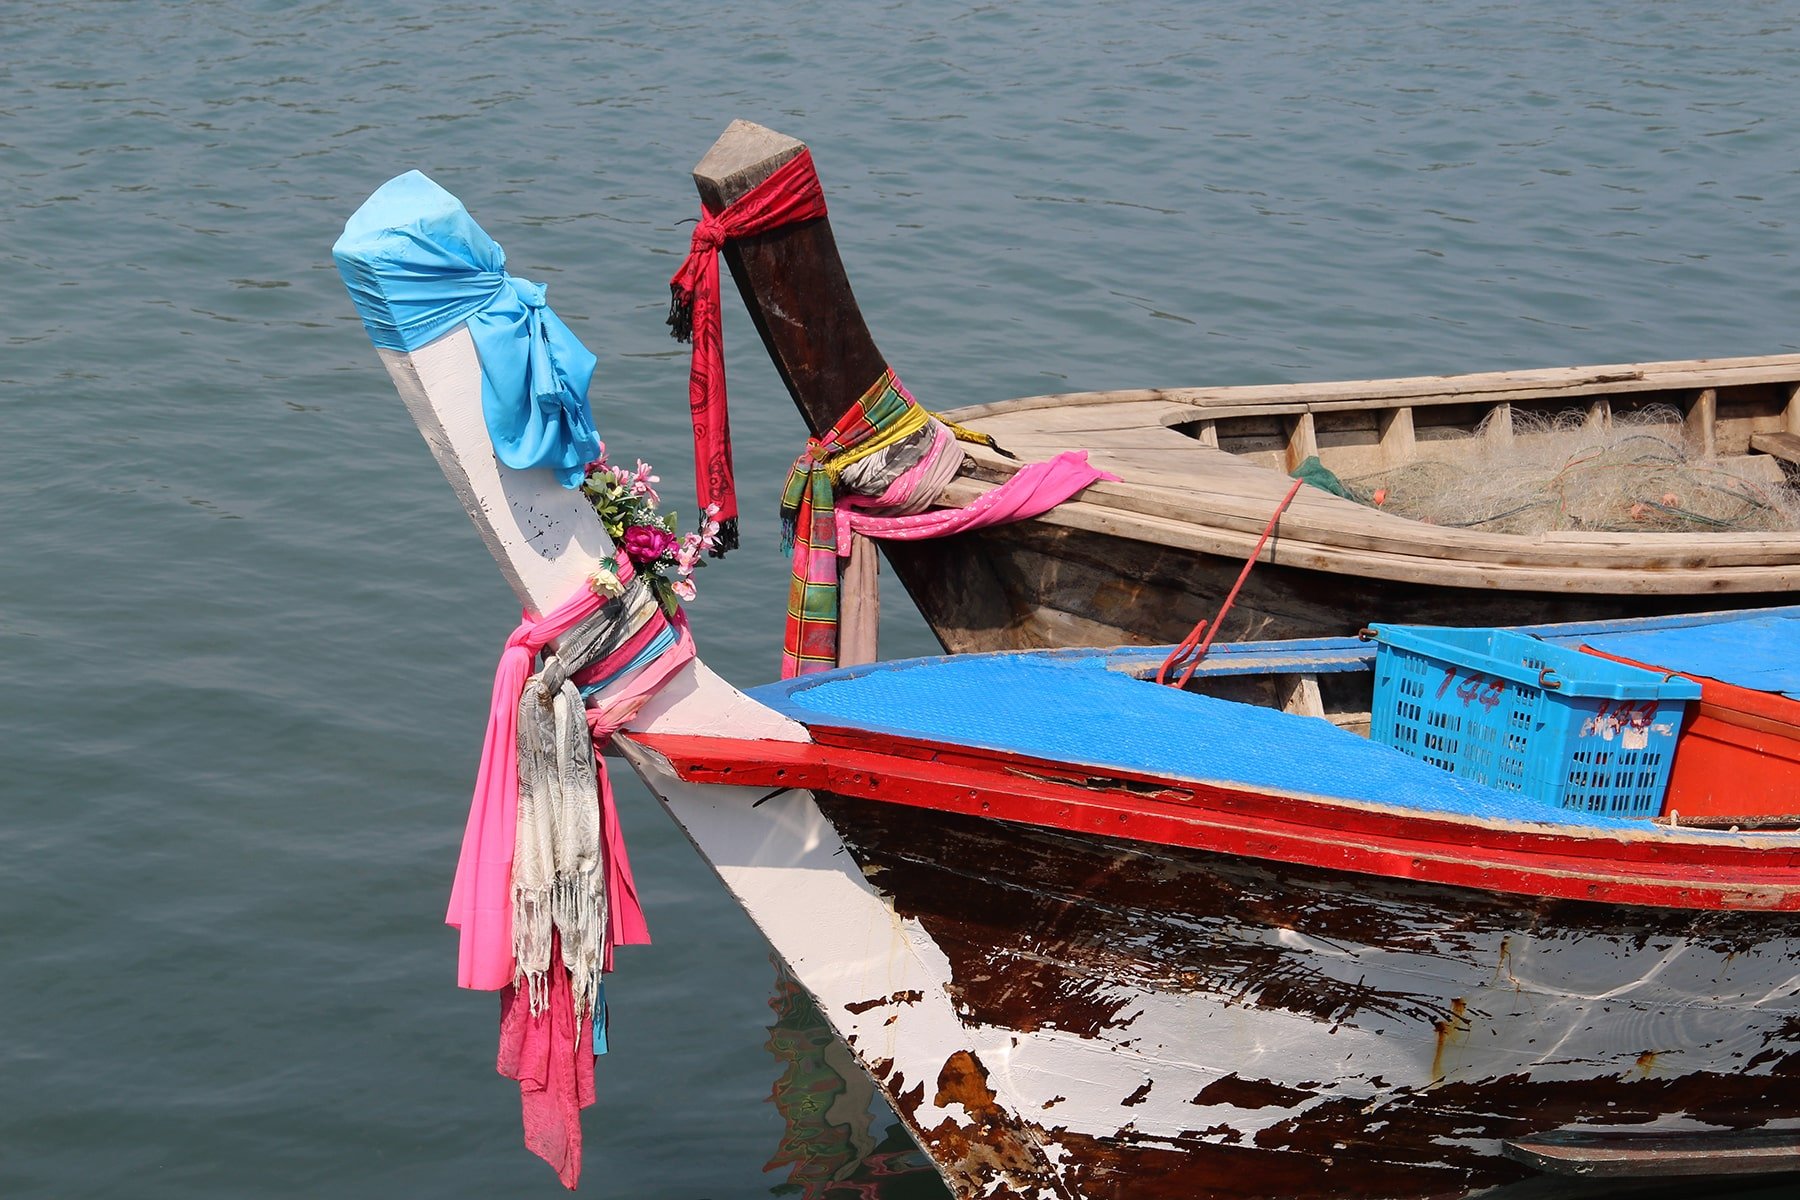 Colourful offerings on boats in Koh Yao Yai